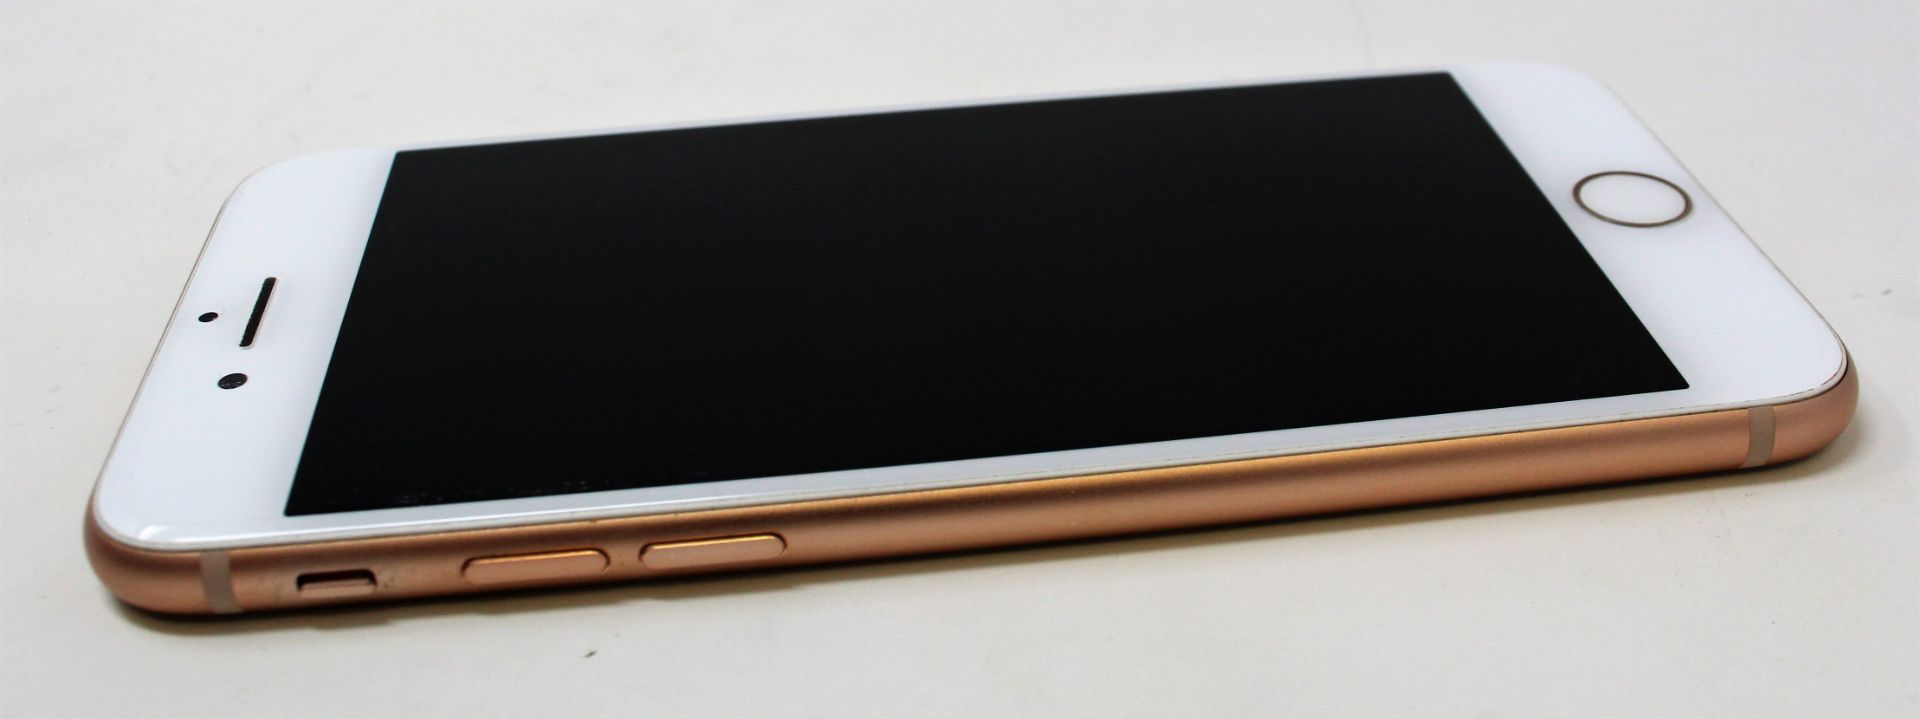 A pre-owned Apple iPhone 8 (AT&T/T-Mobile/Global/A1905) 64GB in Gold (iCloud activation clear) ( - Image 6 of 7